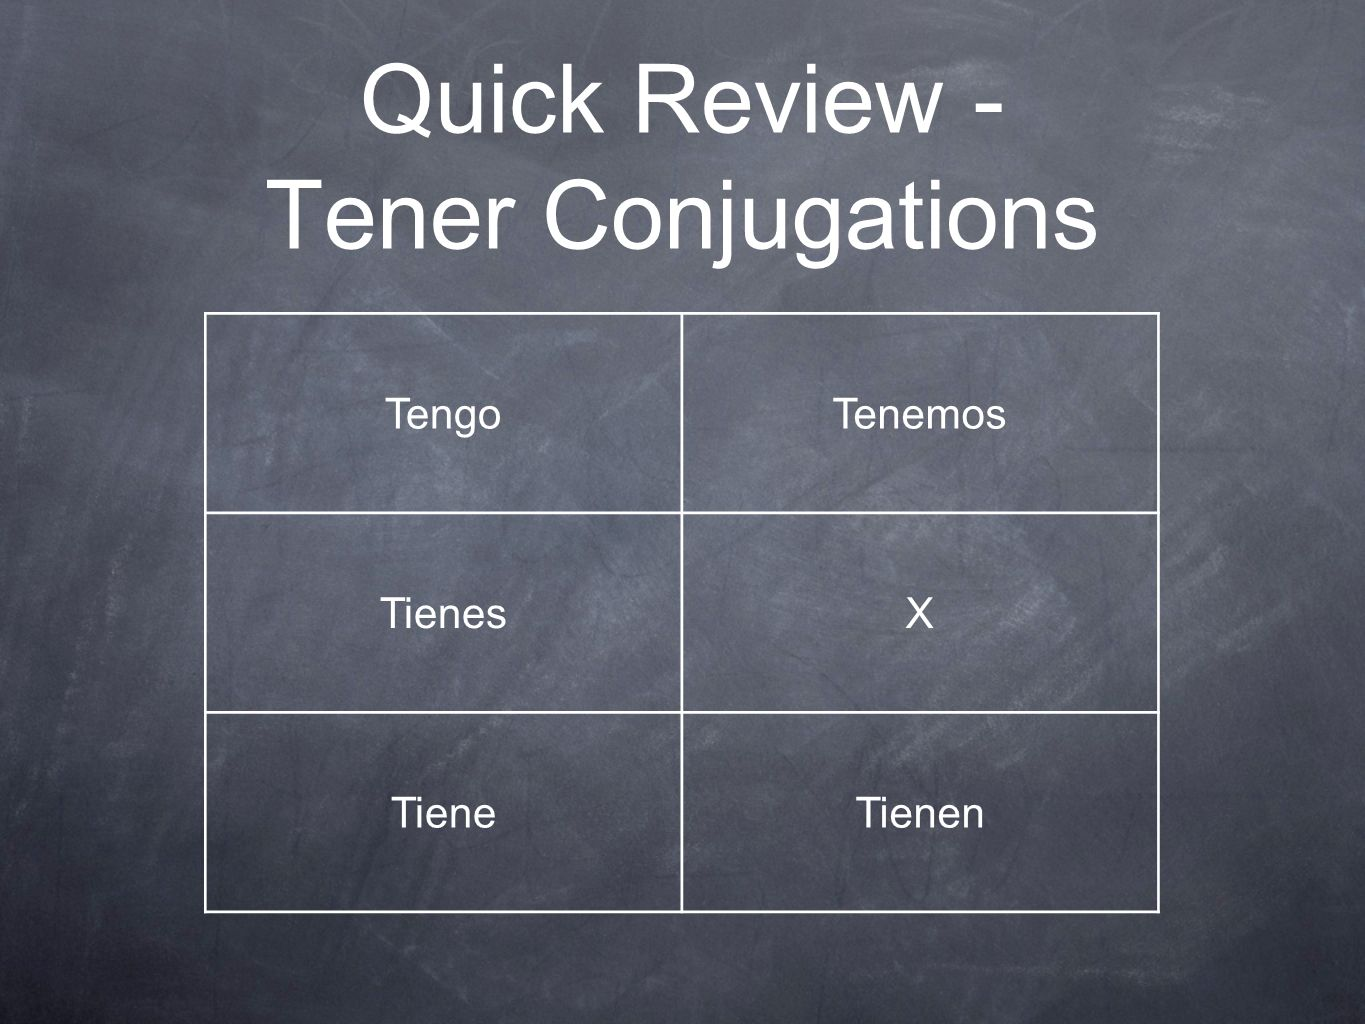 Quick Review - Tener Conjugations